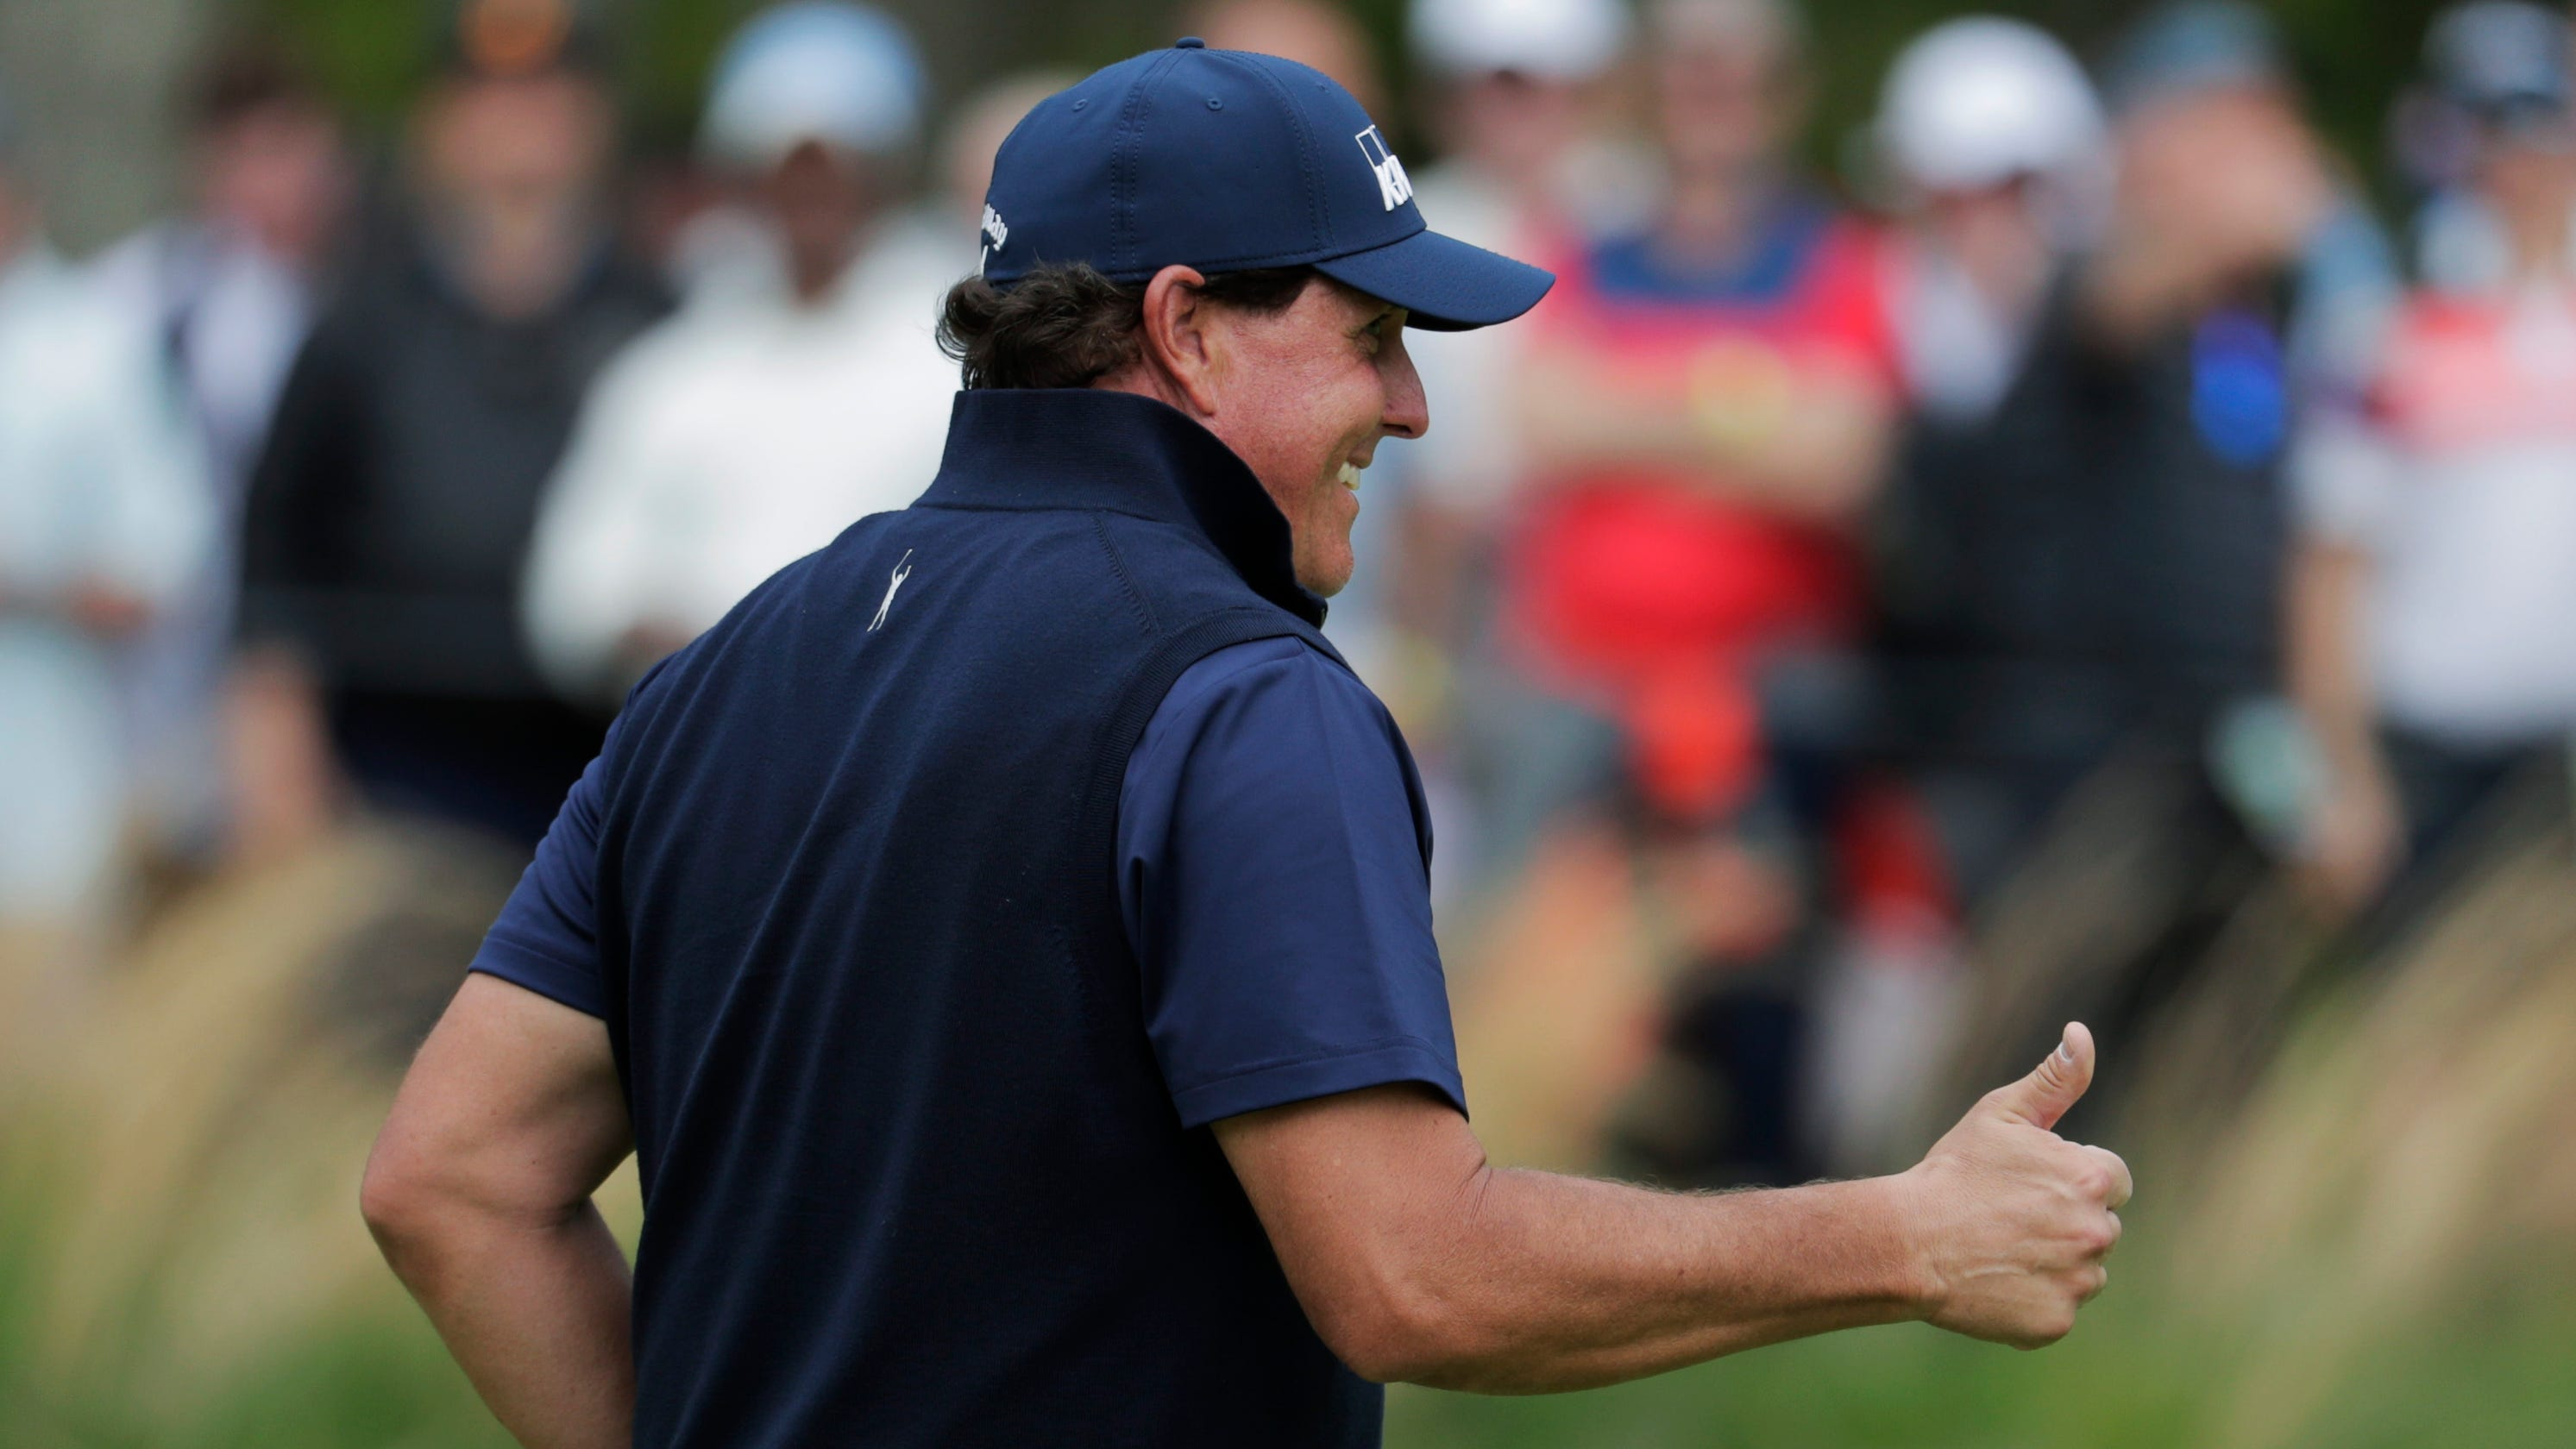 Phil Mickelson posts another weird video: 'As the putts go down, the thumbs are coming up'